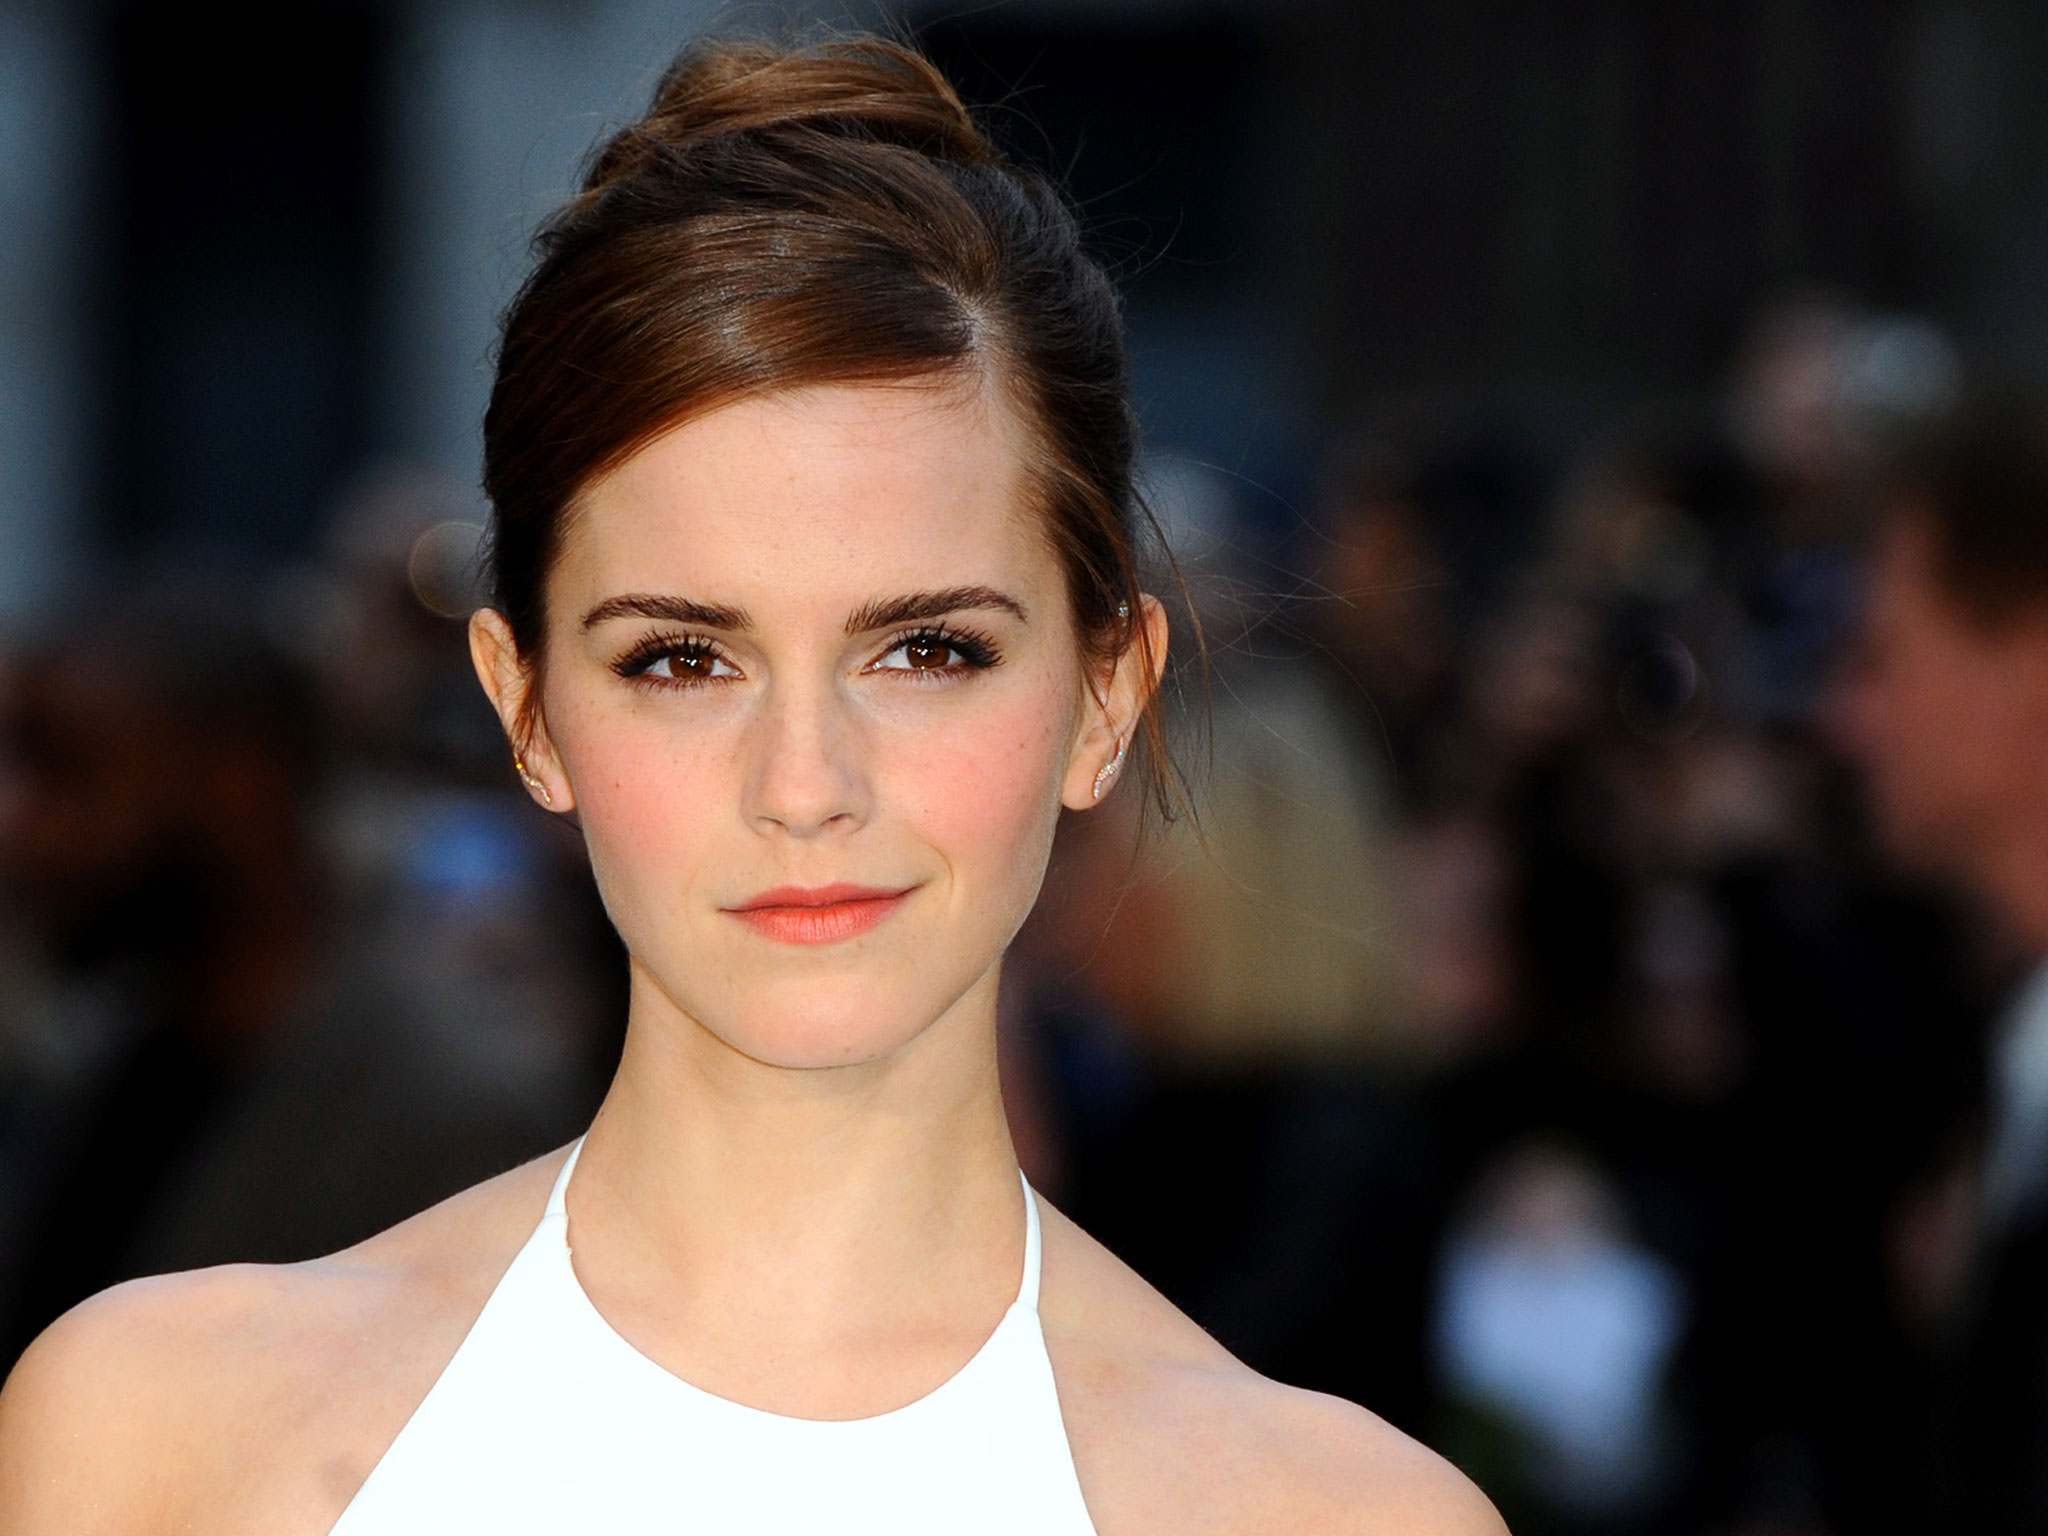 Emma Watson's Best Beauty Look